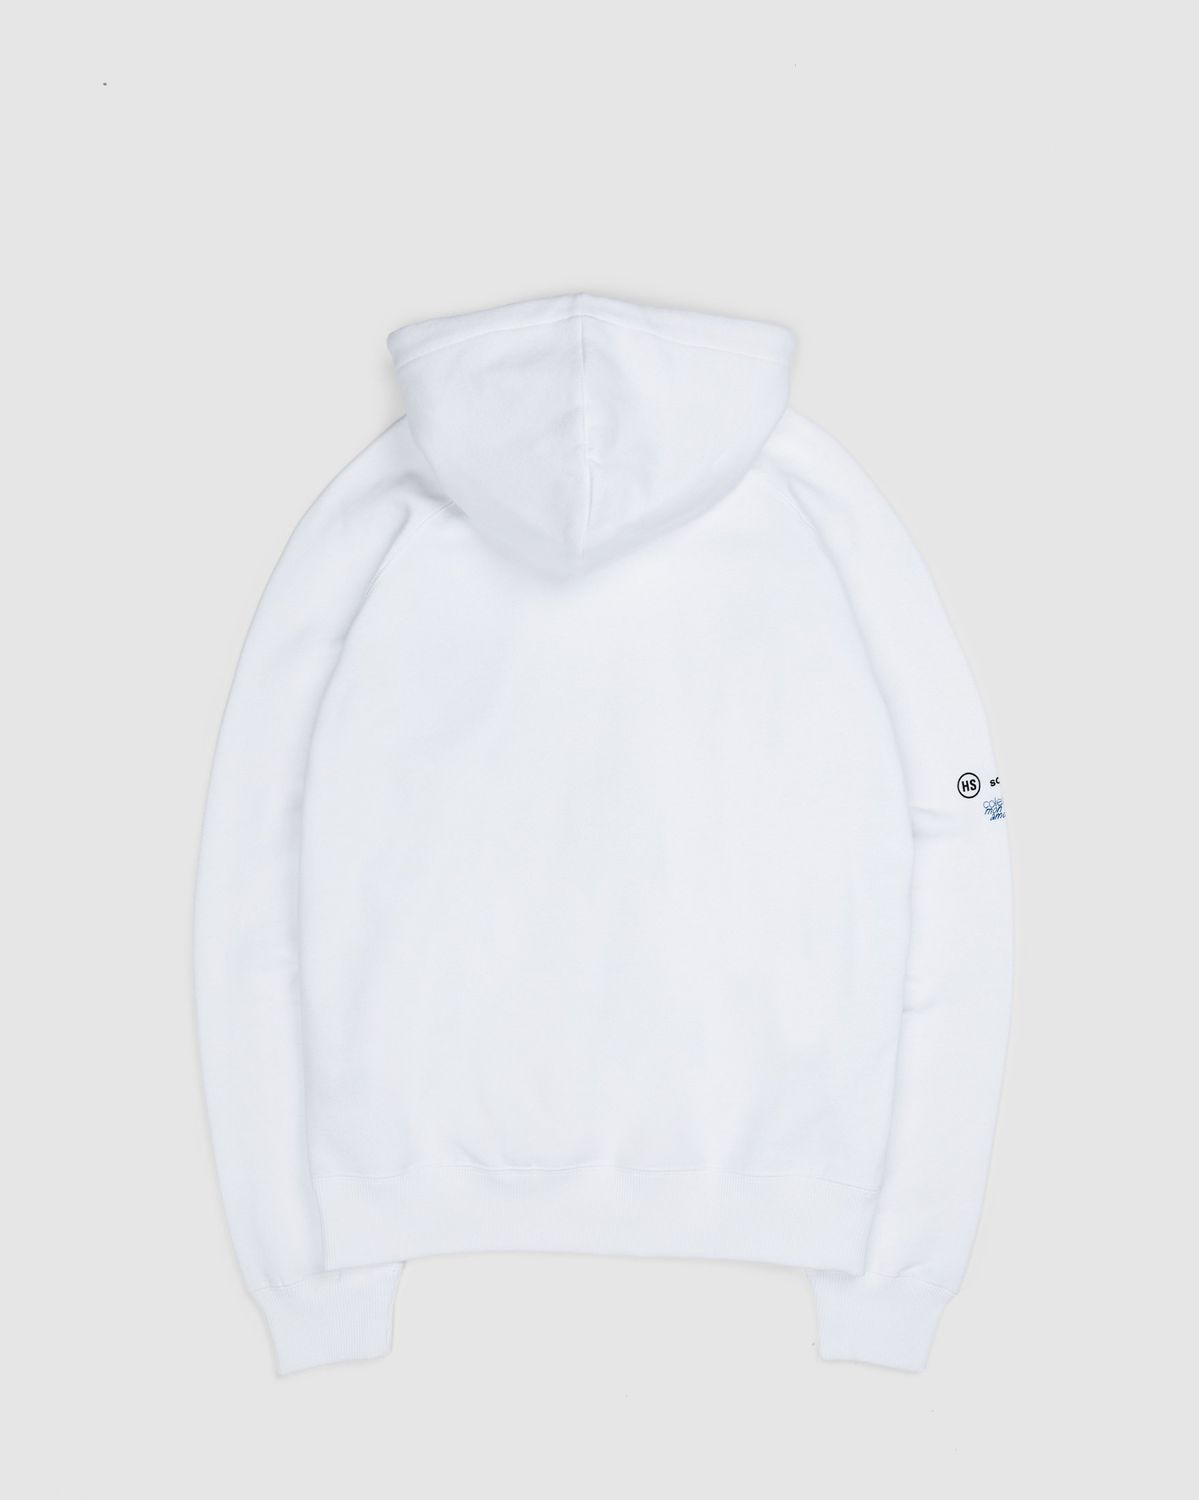 Colette Mon Amour x Soulland —  Snoopy Bed White Hoodie - Image 2